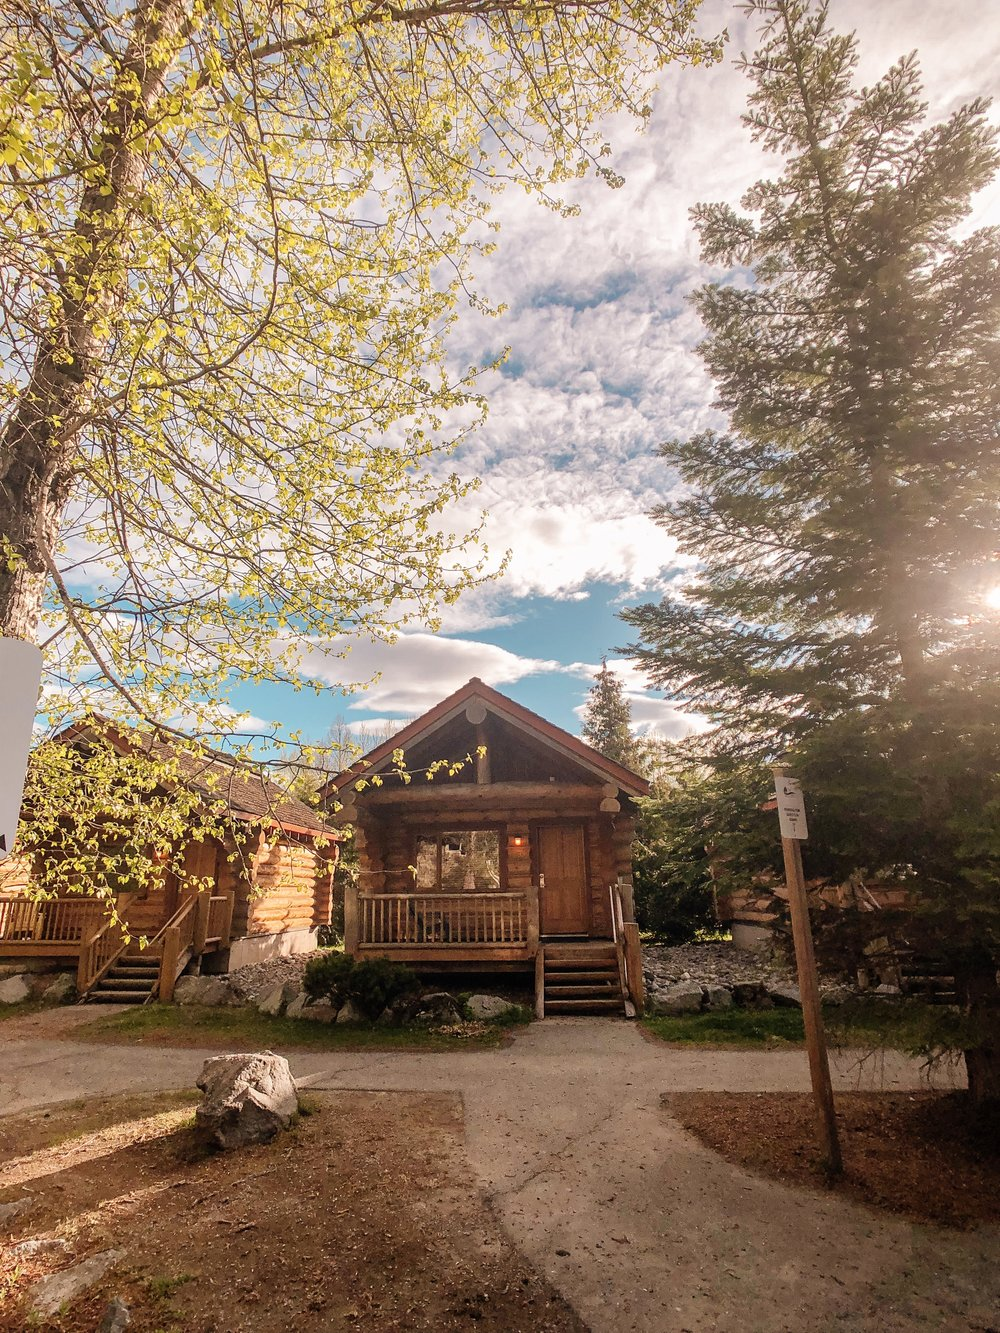 Unique bucket list cabin for bachelorette in Whistler Canada